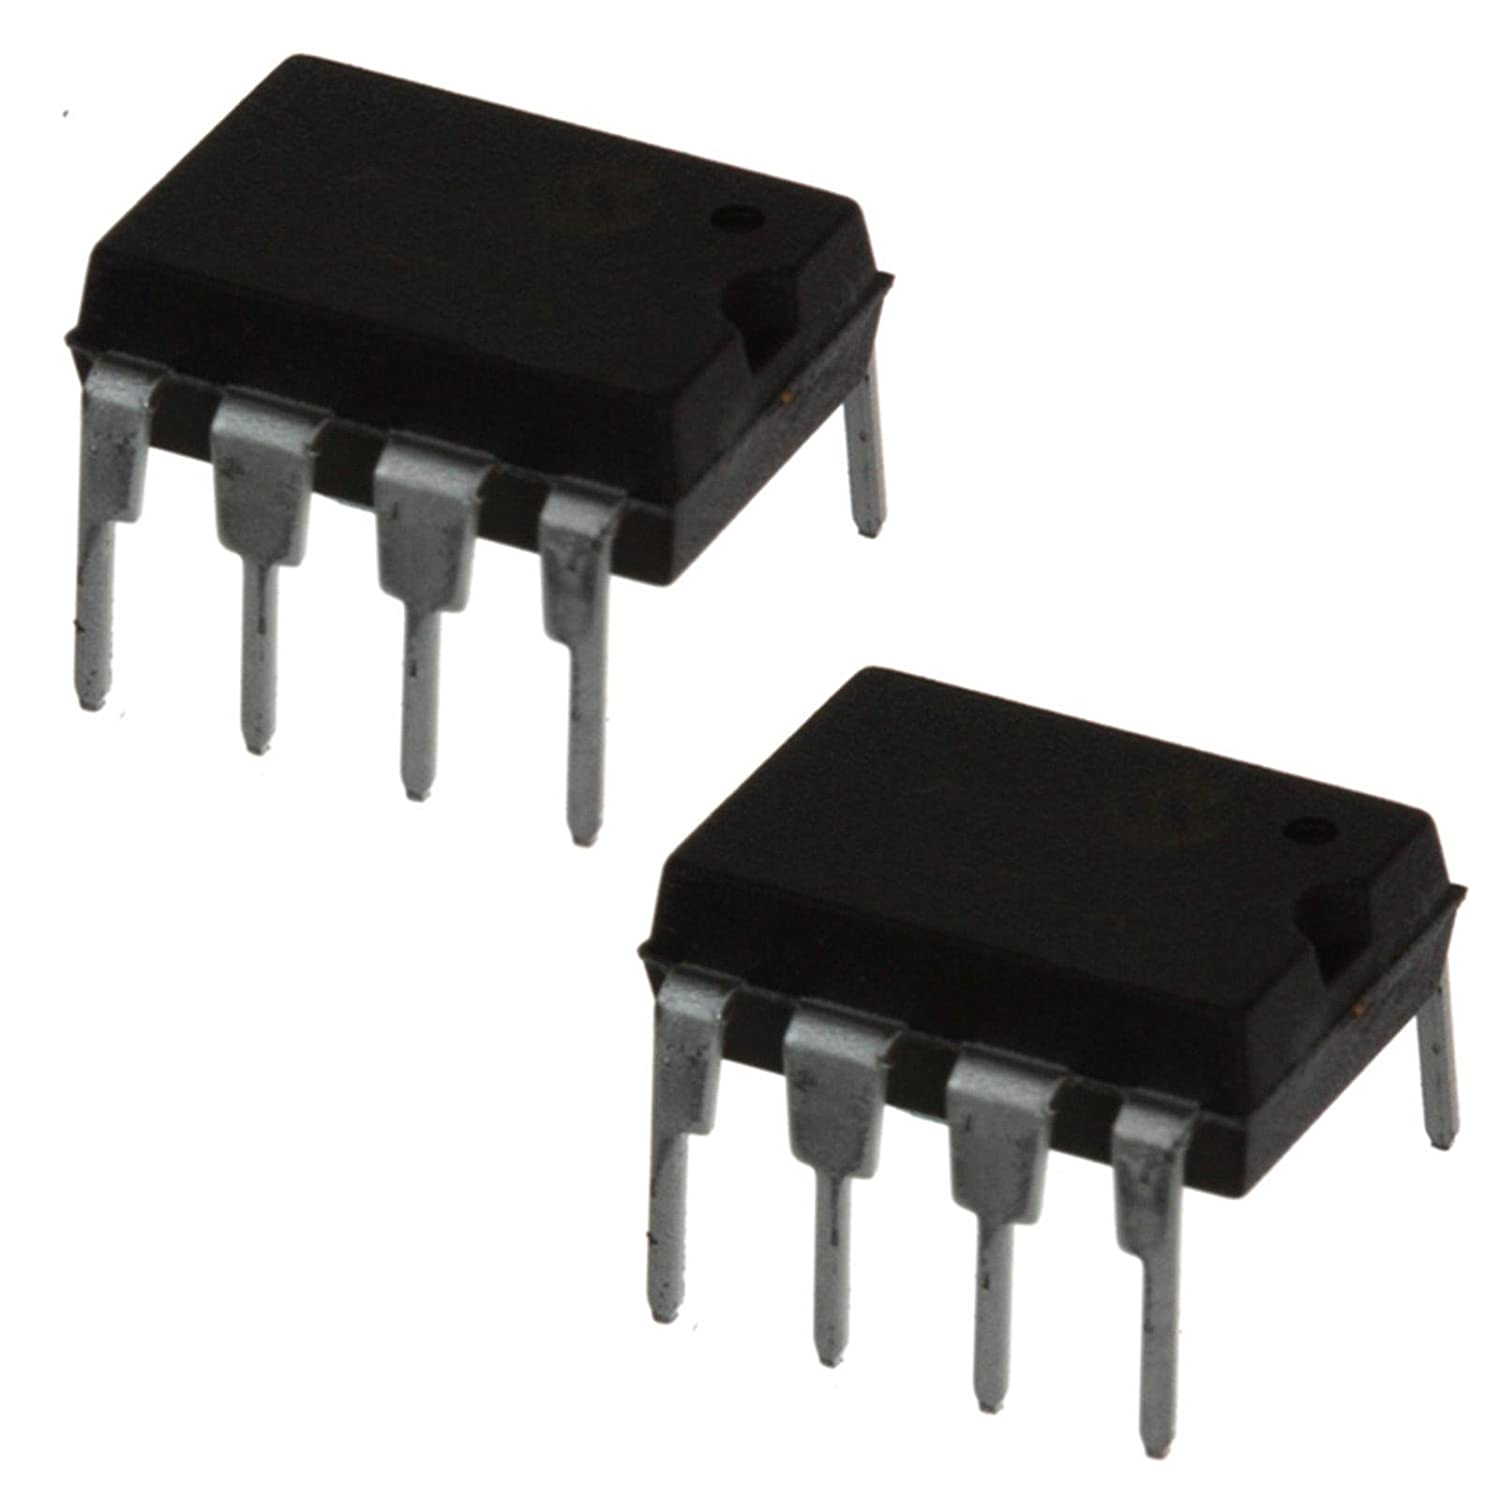 2x TL082 Dual Low Distortion J-FET Input Op. Amp. IC Texas Instruments